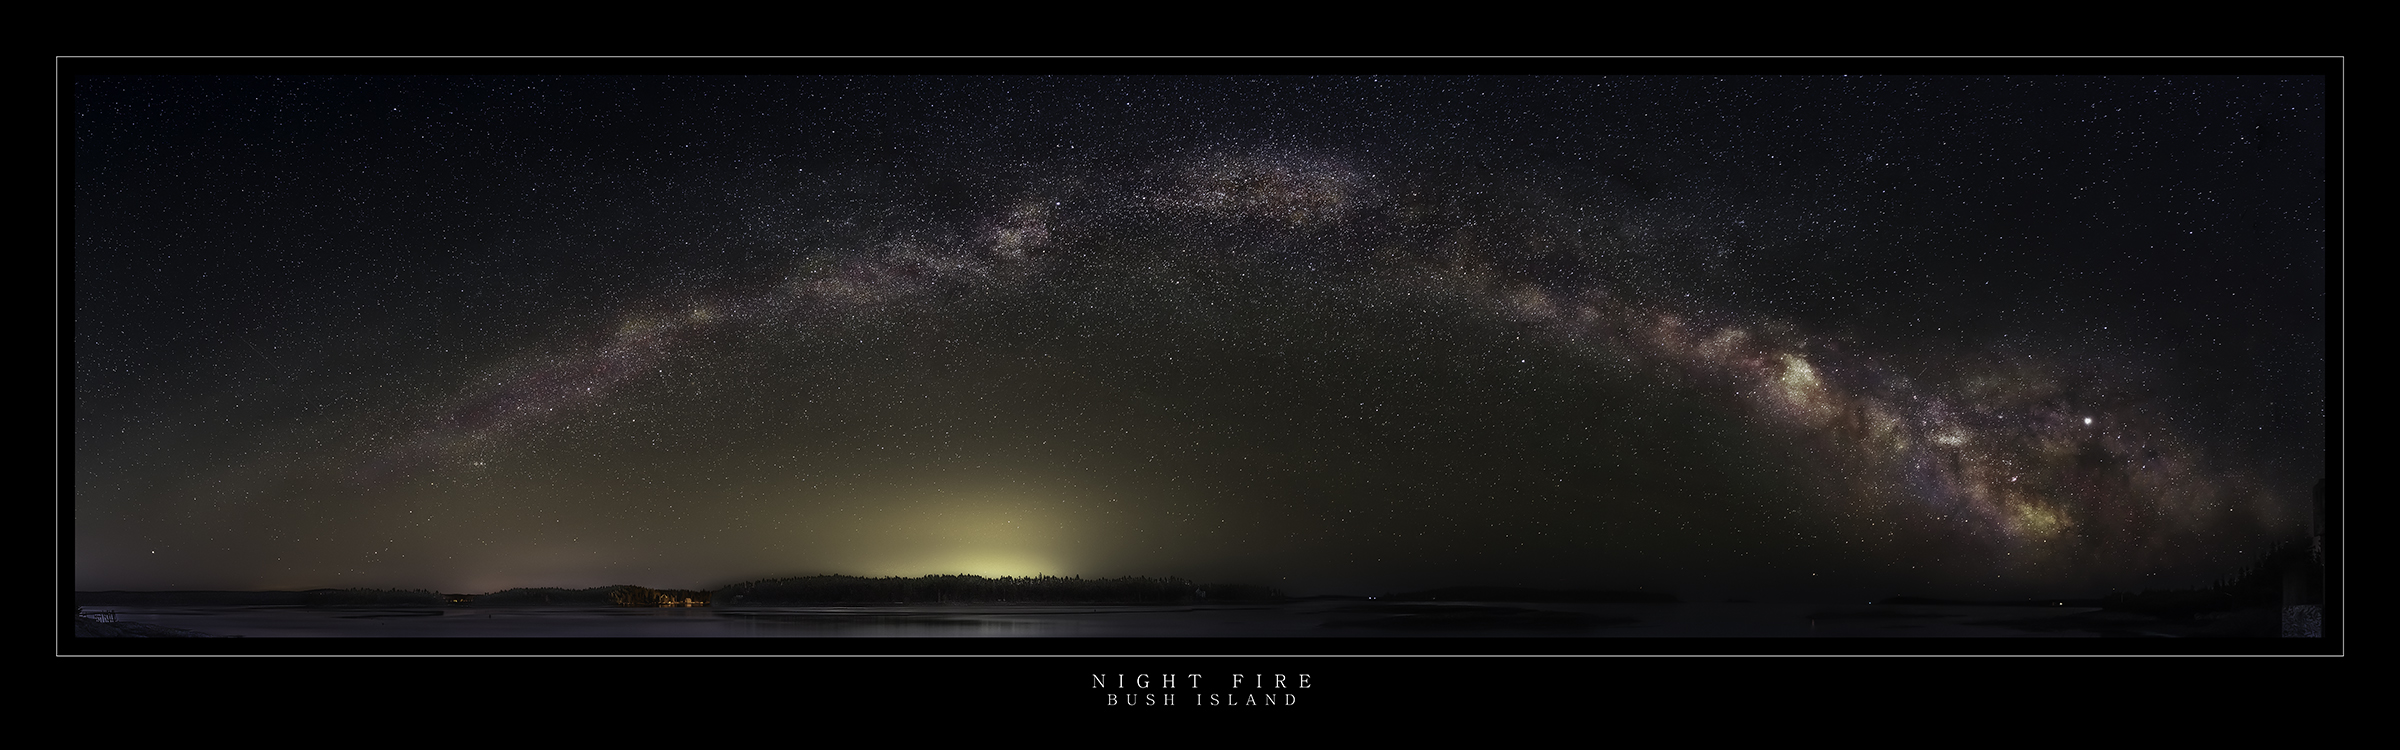 Night time panoramic landscape picture of the Milky Way Galaxy on fire over a silhouetted landscape taken at Rissers Beach Provinvcial Park, Lunenburg County Nova Scotia